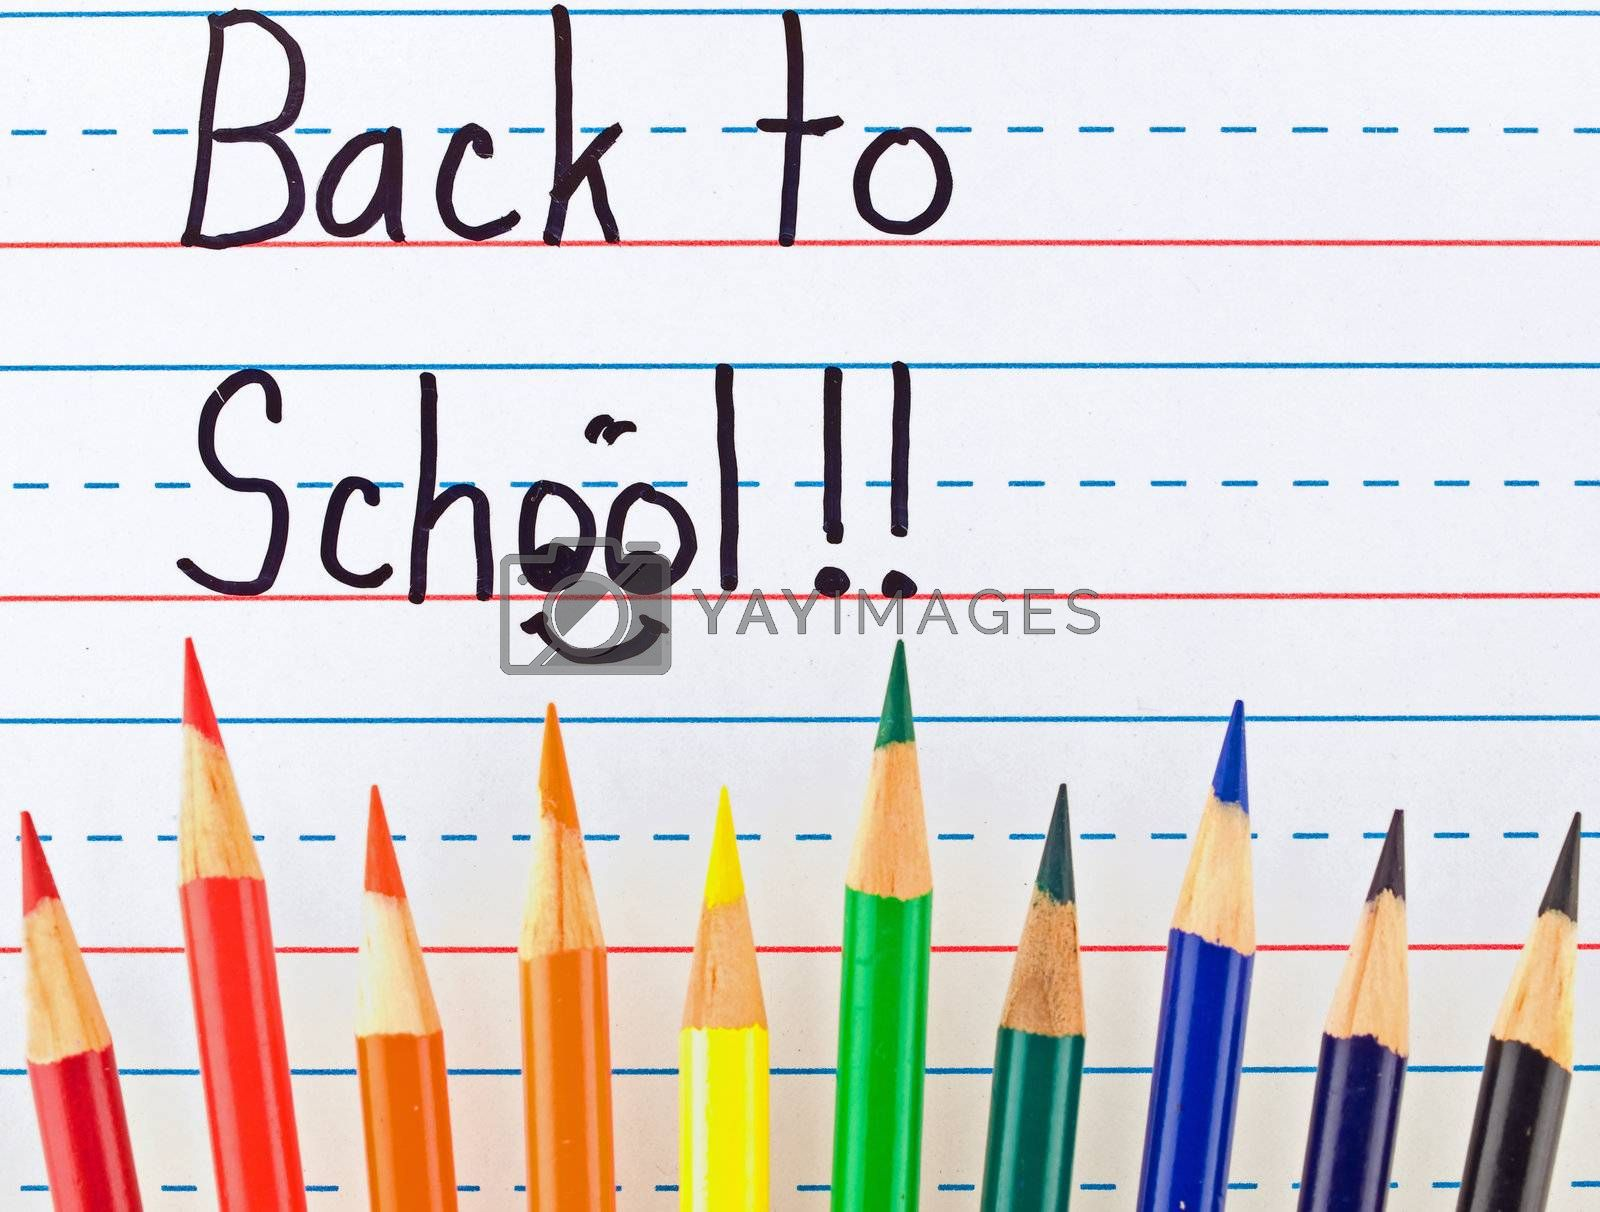 Back to School Written on a Lined Dry Erase Board with Colored Pencils